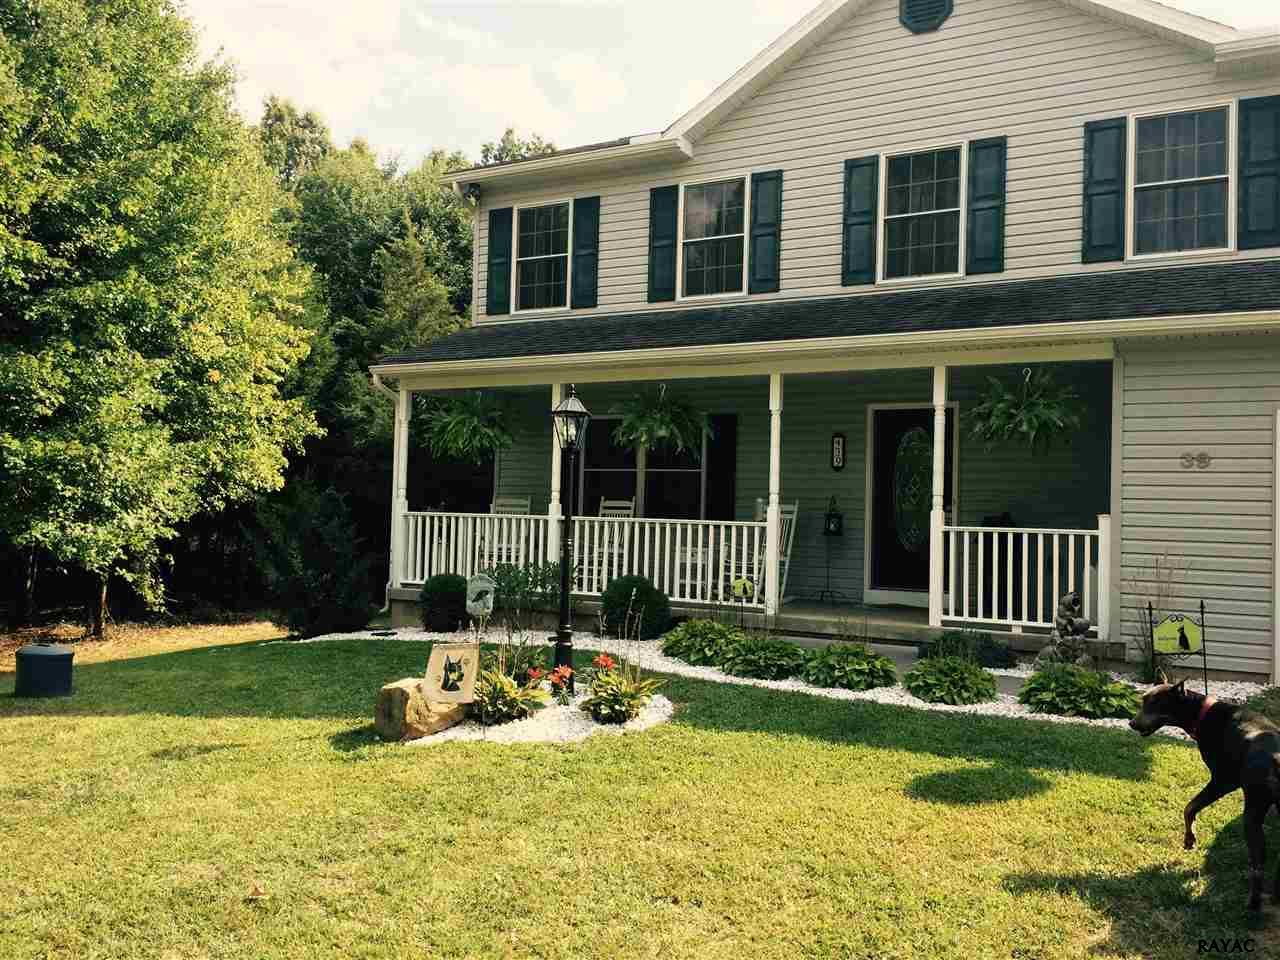 39 Sycamore Ct, Littlestown, PA 17340